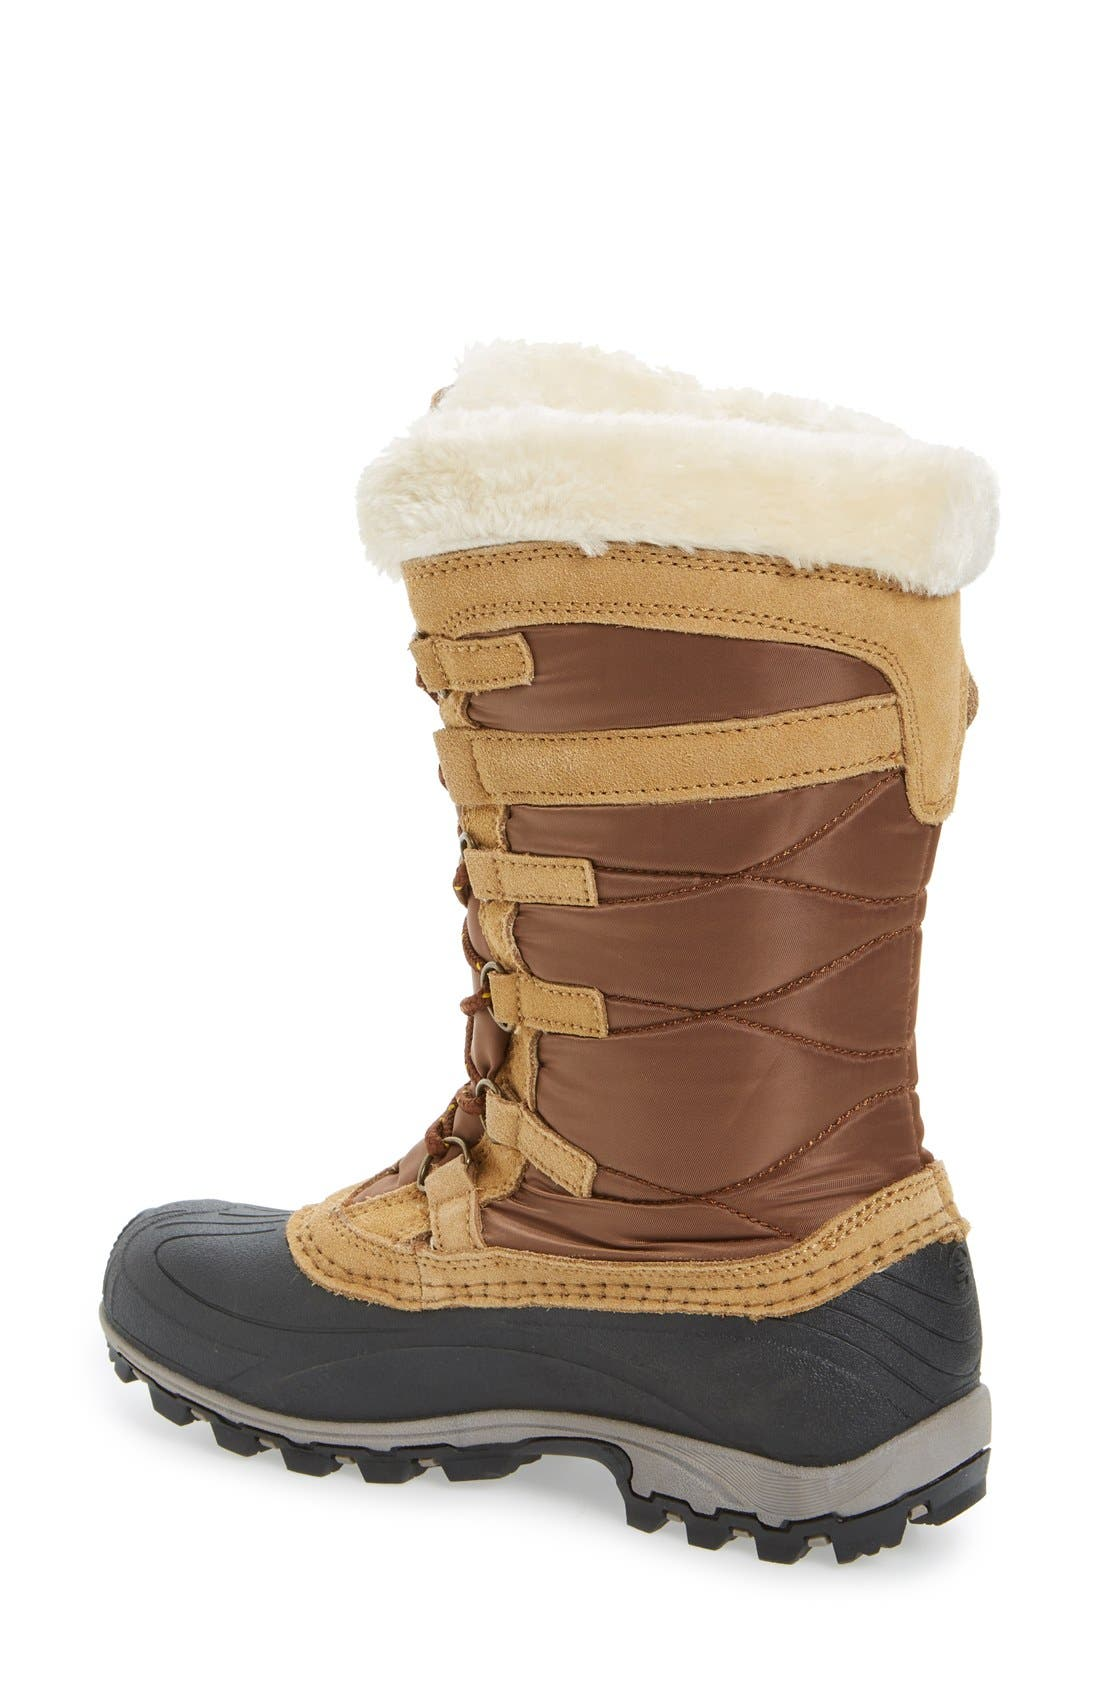 Snowvalley Waterproof Boot with Faux Fur Cuff,                             Alternate thumbnail 2, color,                             Tan